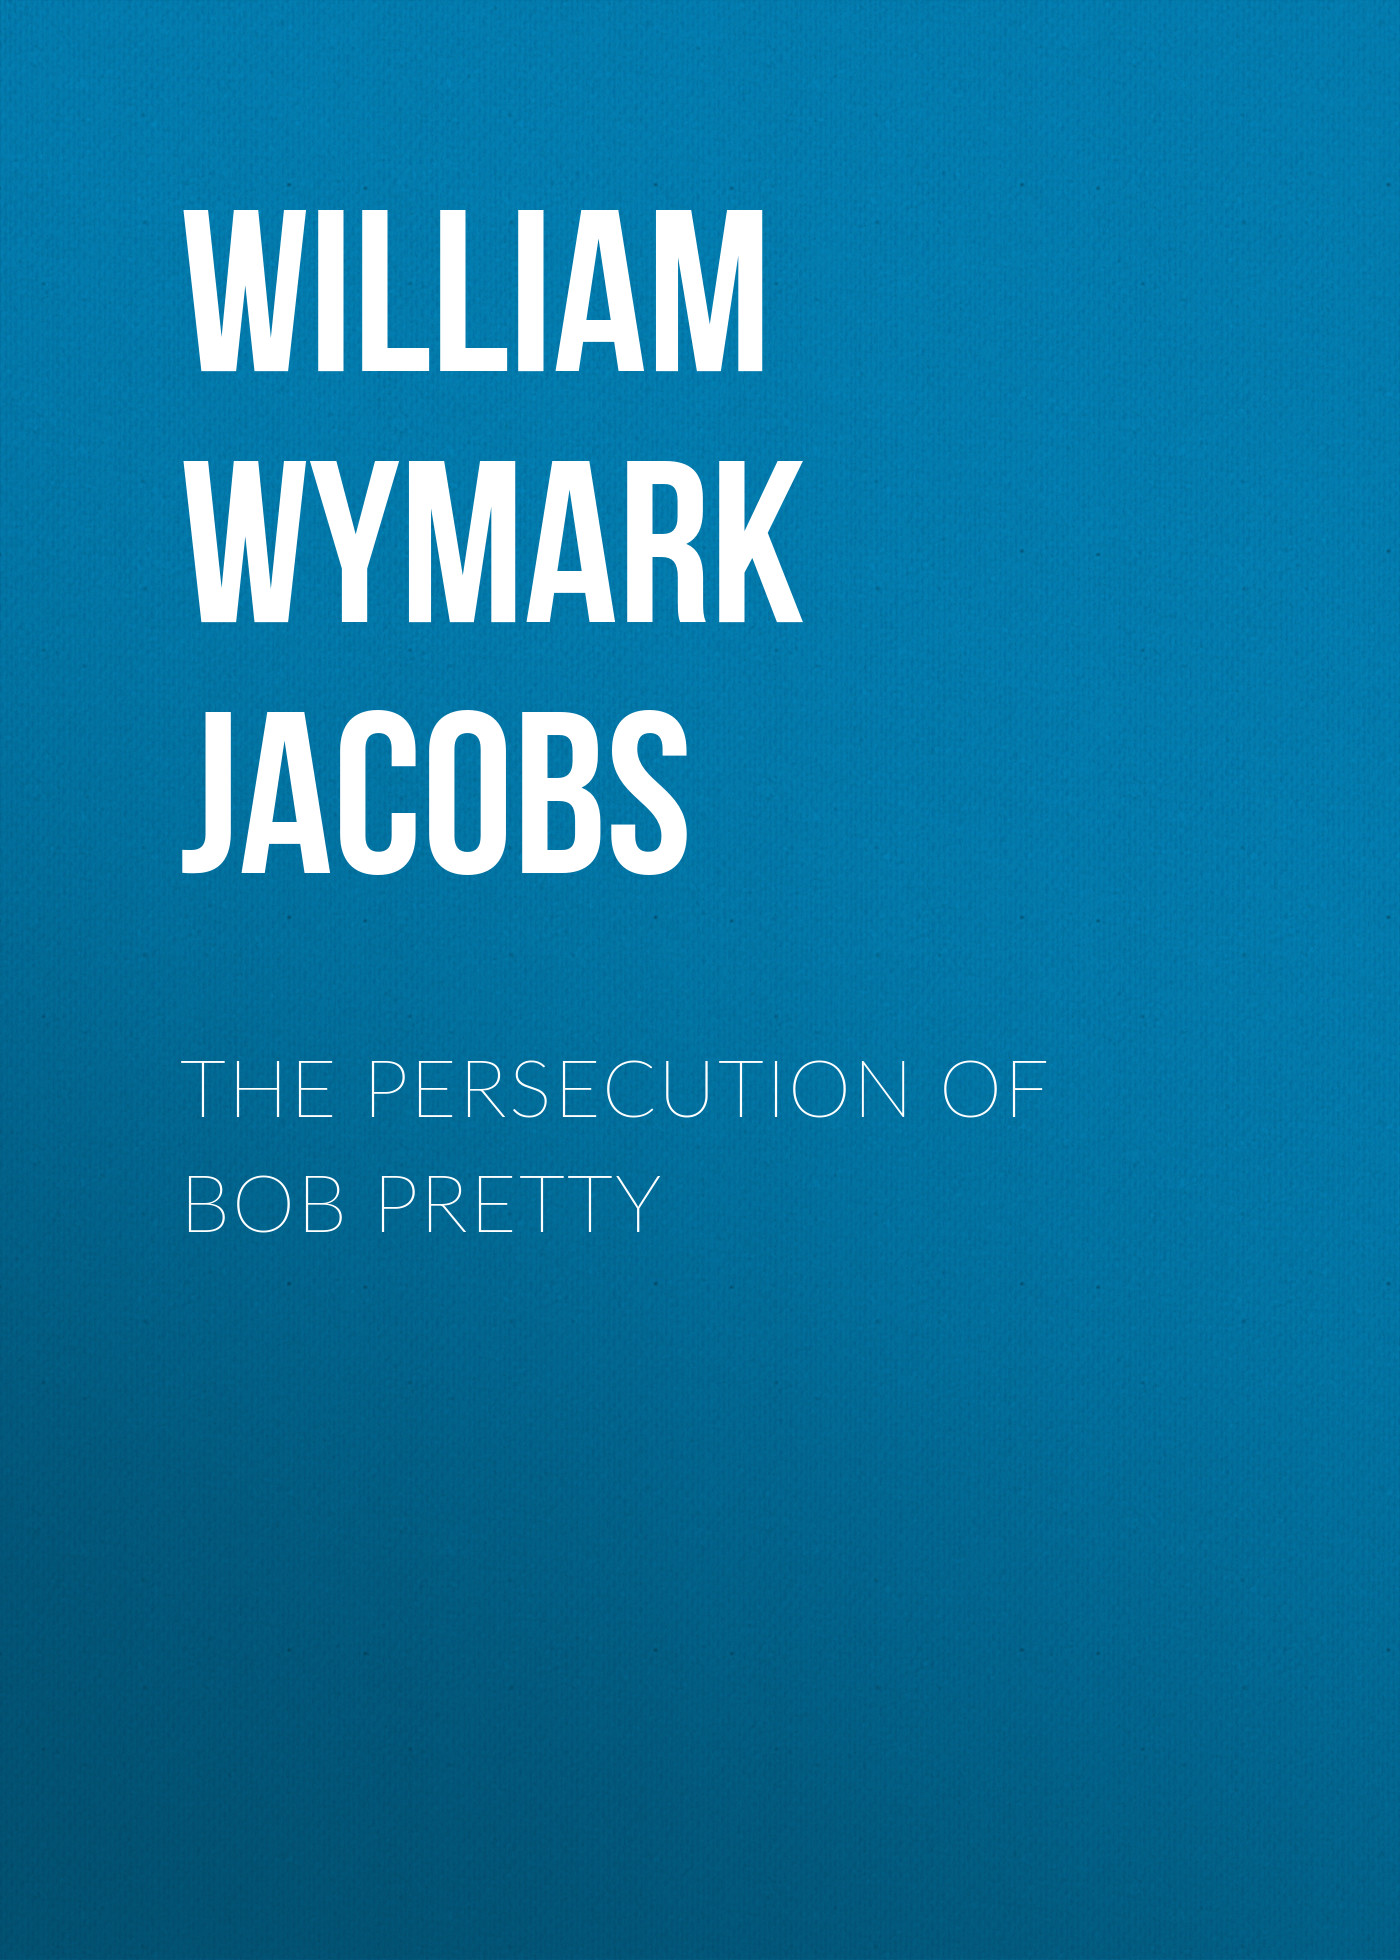 лучшая цена William Wymark Jacobs The Persecution of Bob Pretty